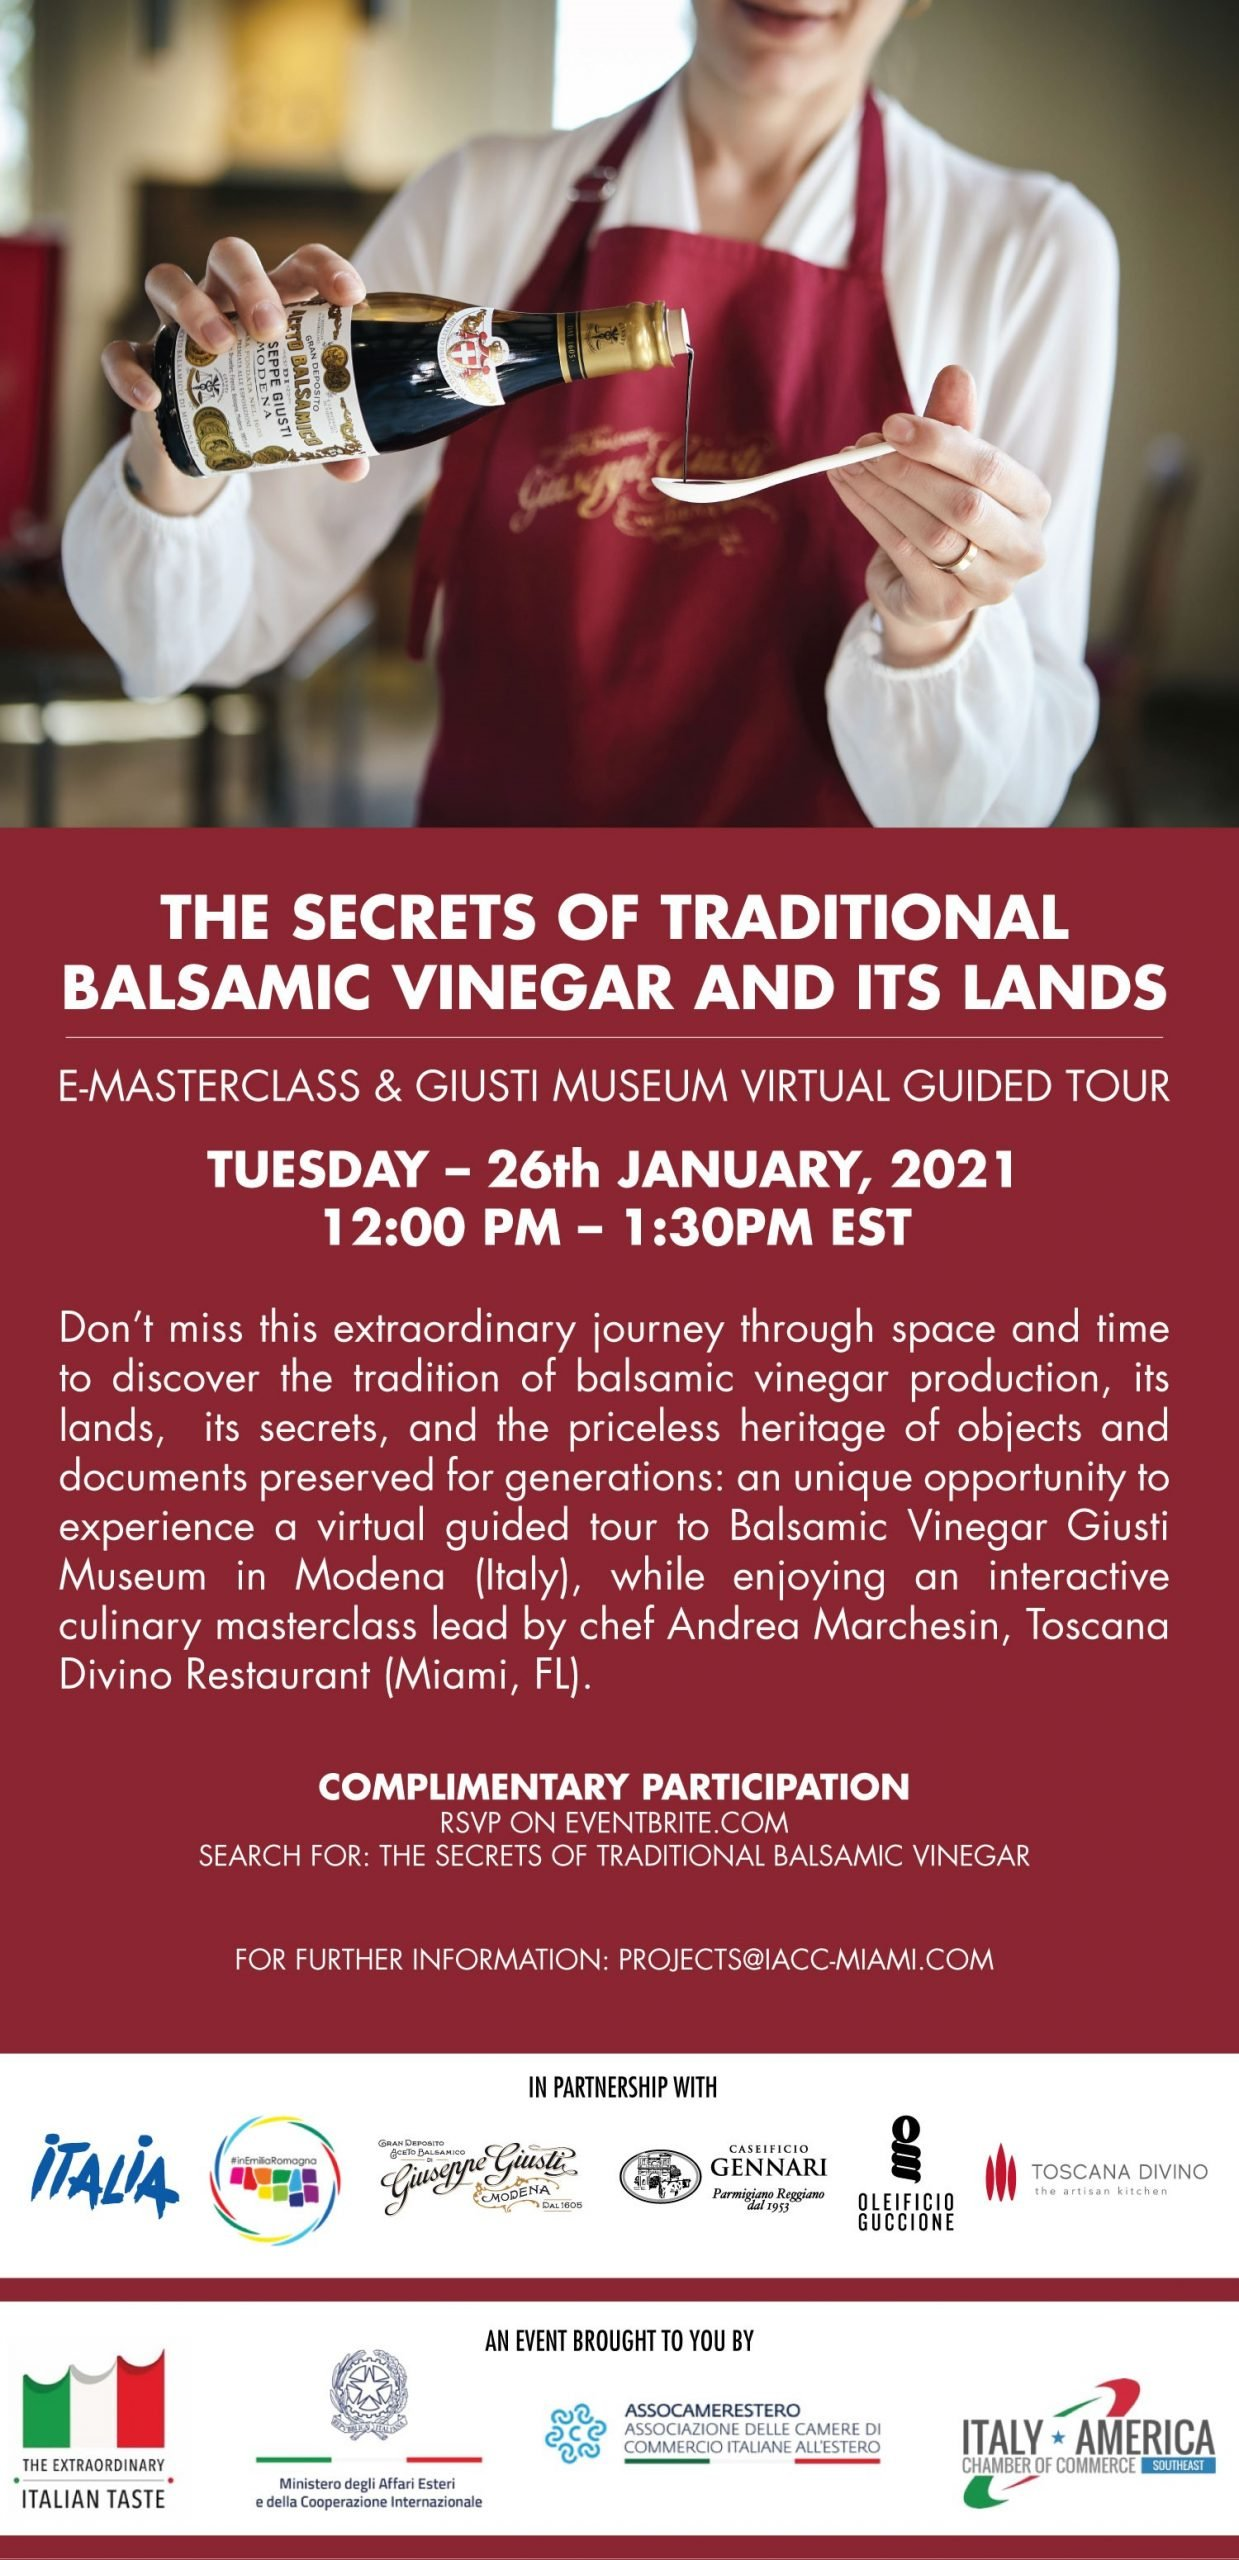 E-Masterclass: The Secrets of Traditional Balsamic Vinegar and Its lands